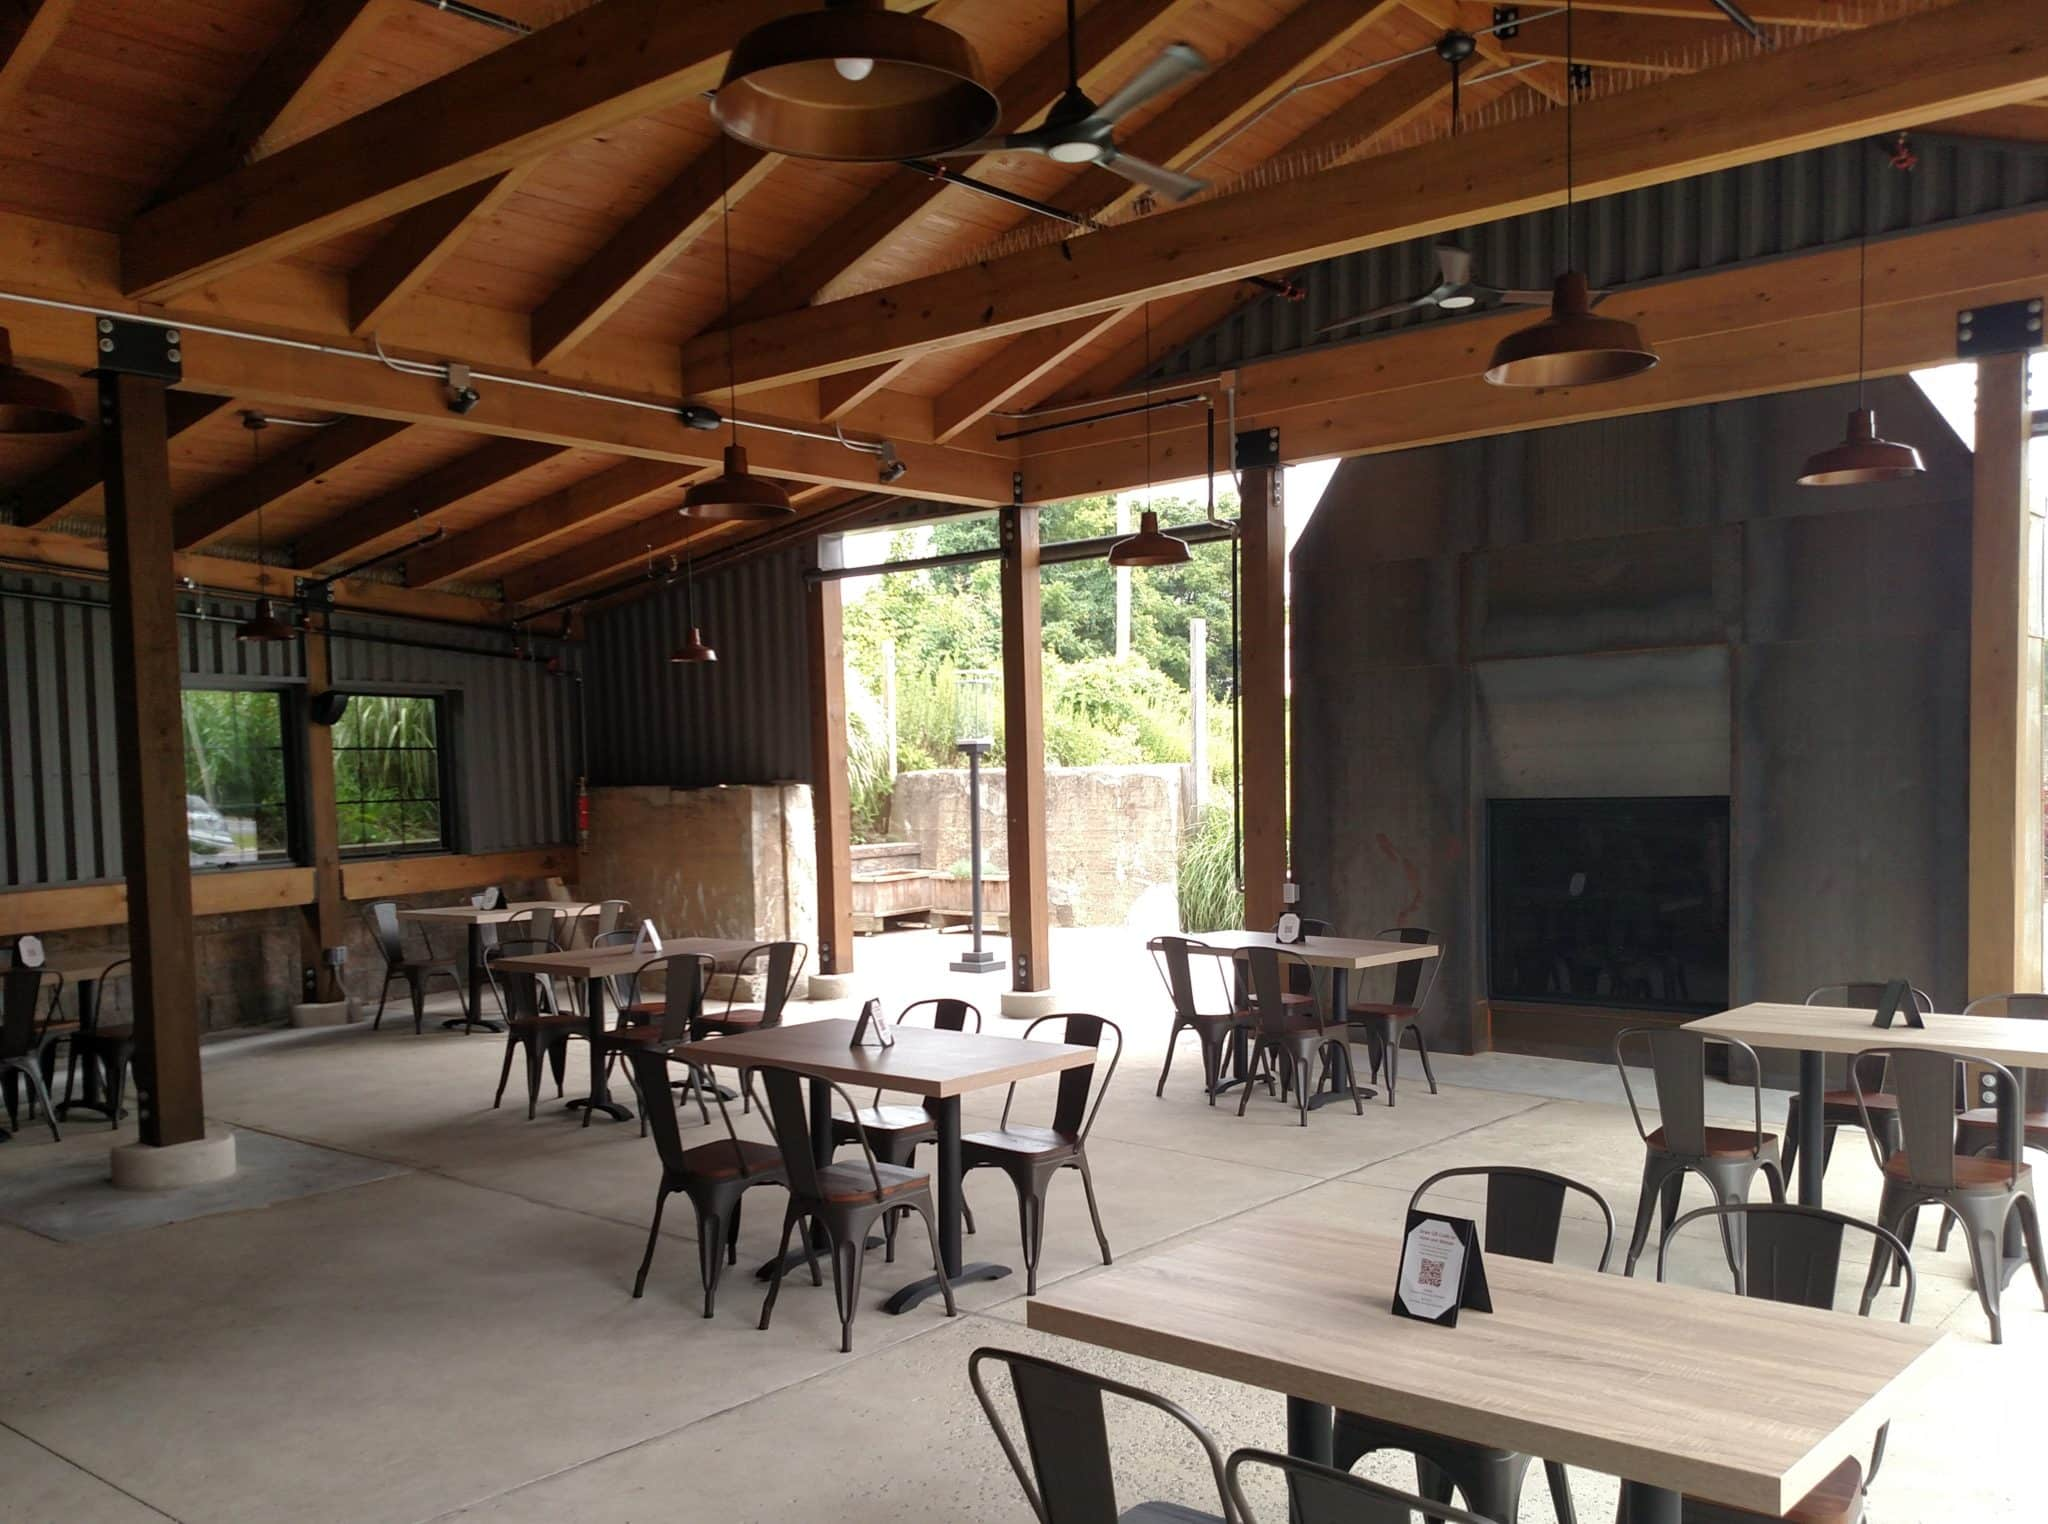 outdoor dining area with timber frame roof and fireplace